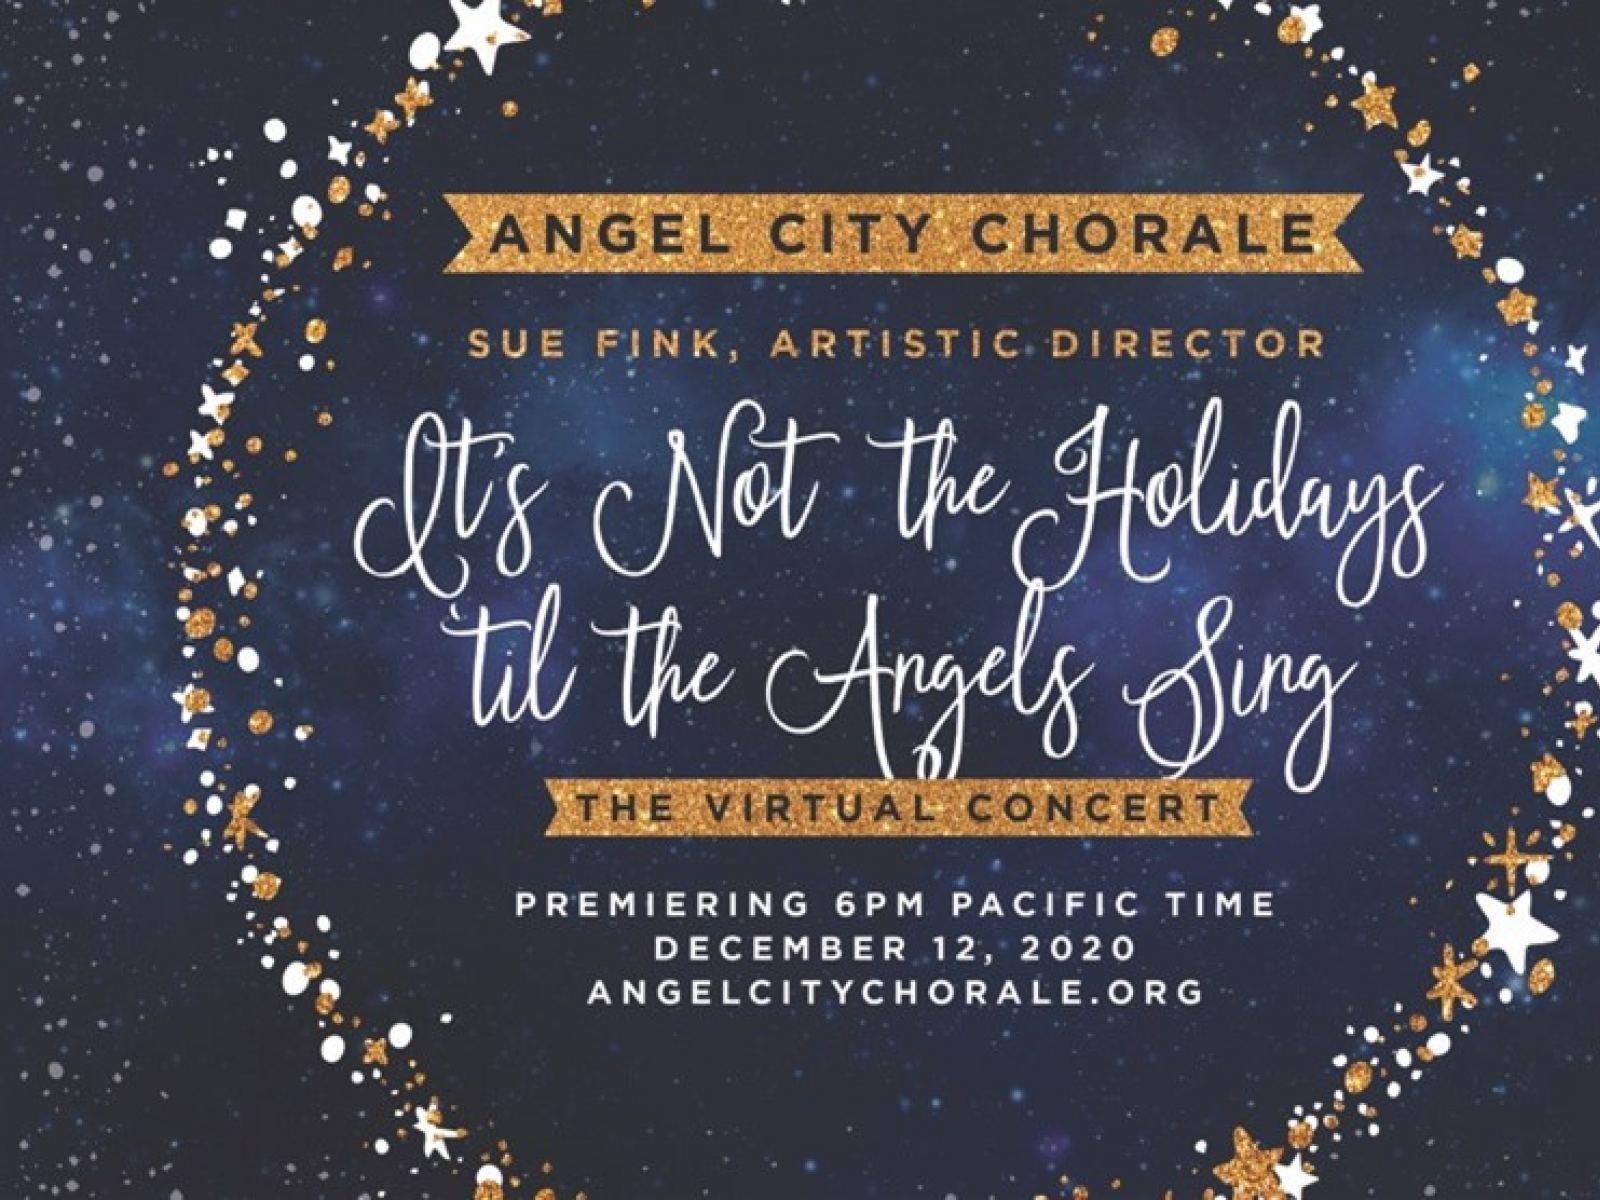 """Angel City Chorale The Virtual Concert """"It's Not the Holidays 'til the Angels Sing"""" with Sue Fink, Artistic Director is Premiering 6PM Pacific Time December 12, 2020"""